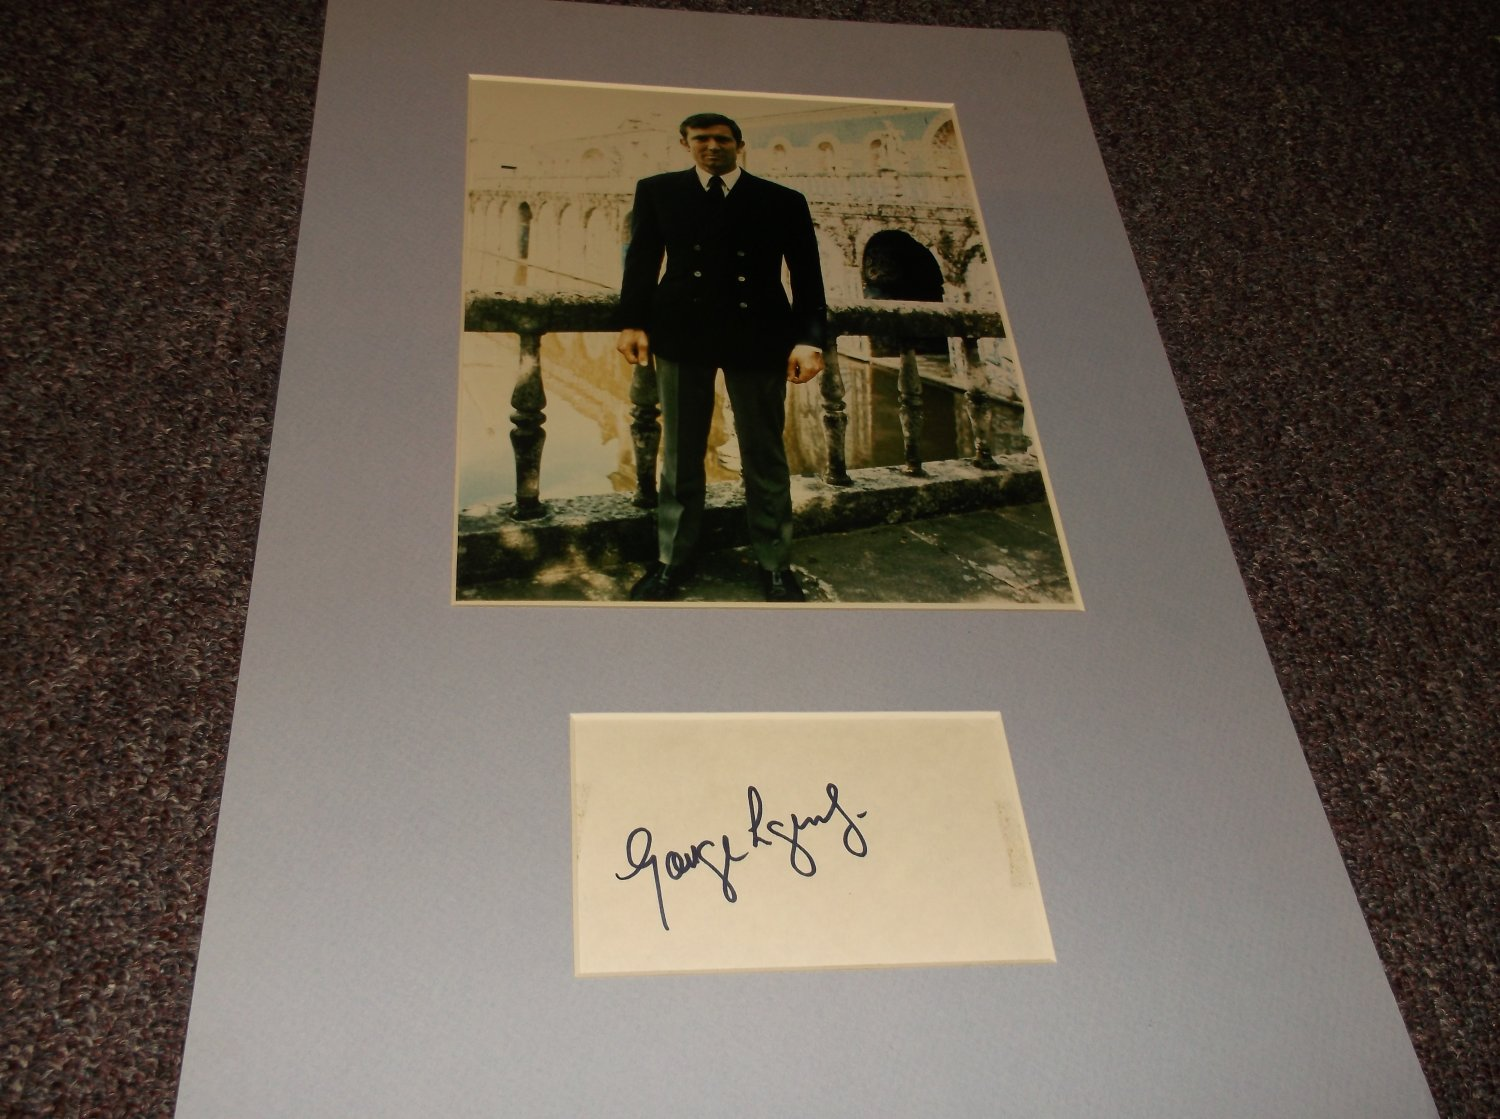 George Lazenby signed 3x5 card matted with photo